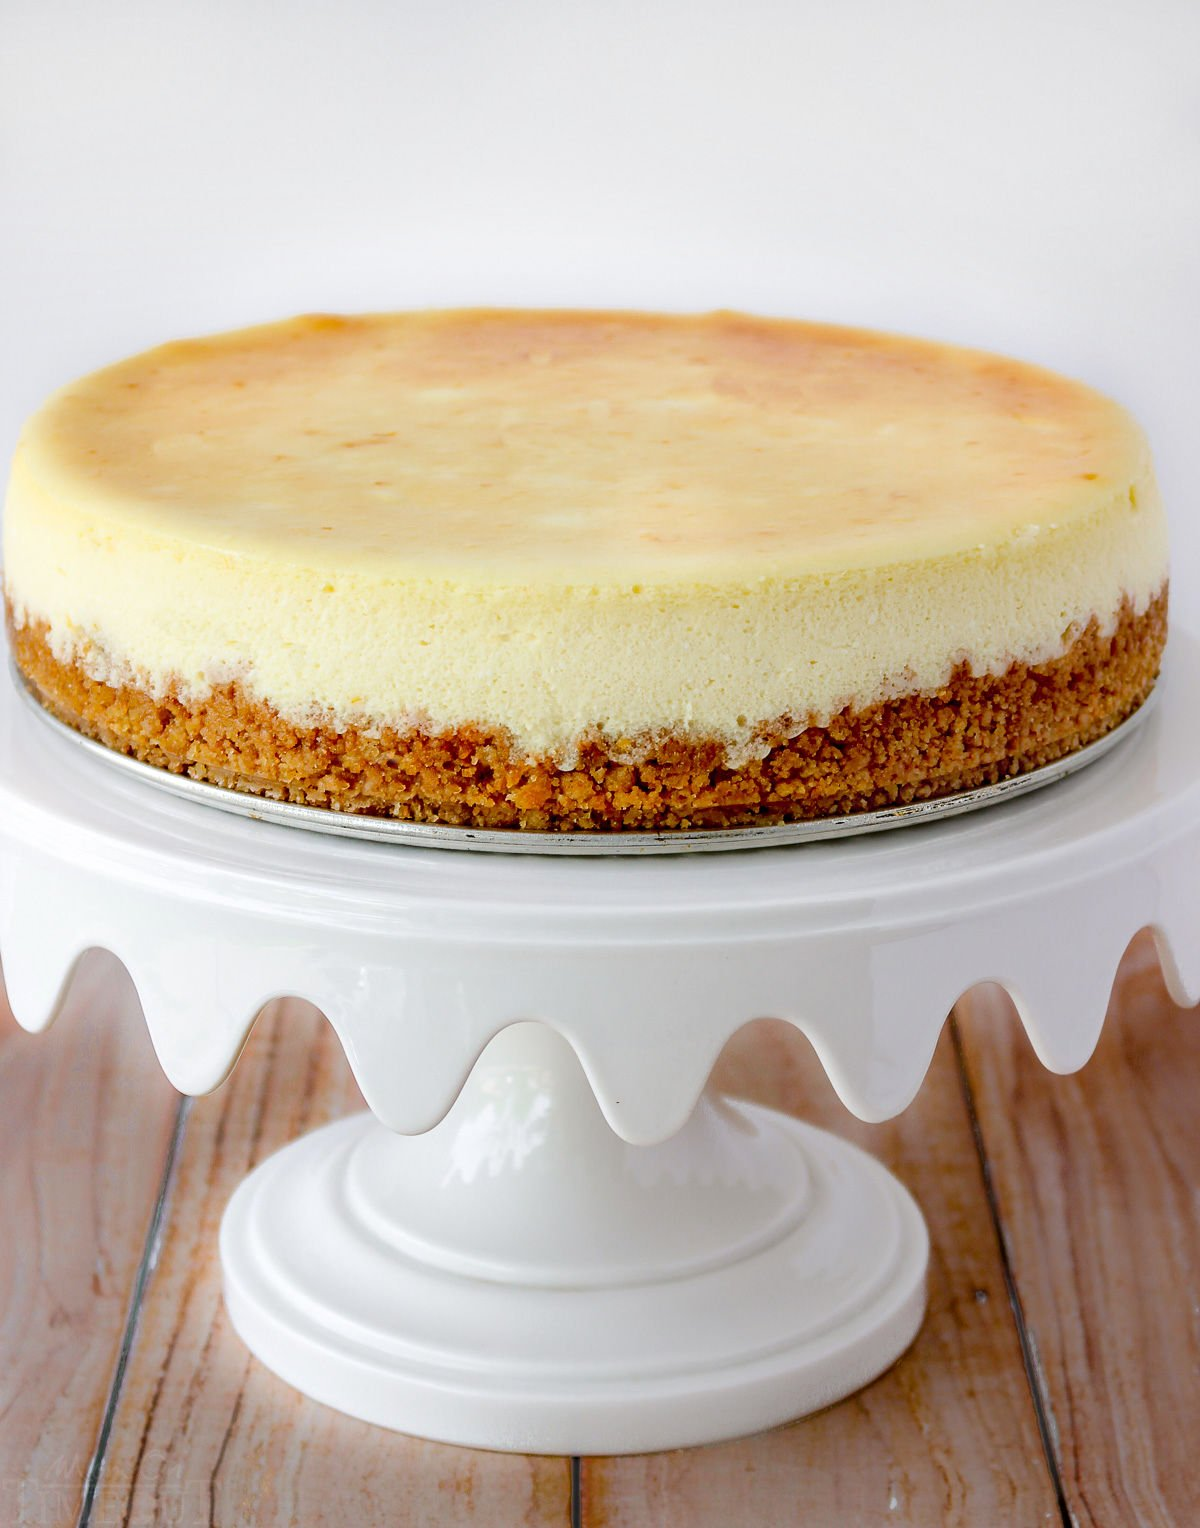 plain cheesecake recipe on white cake stand without toppings.